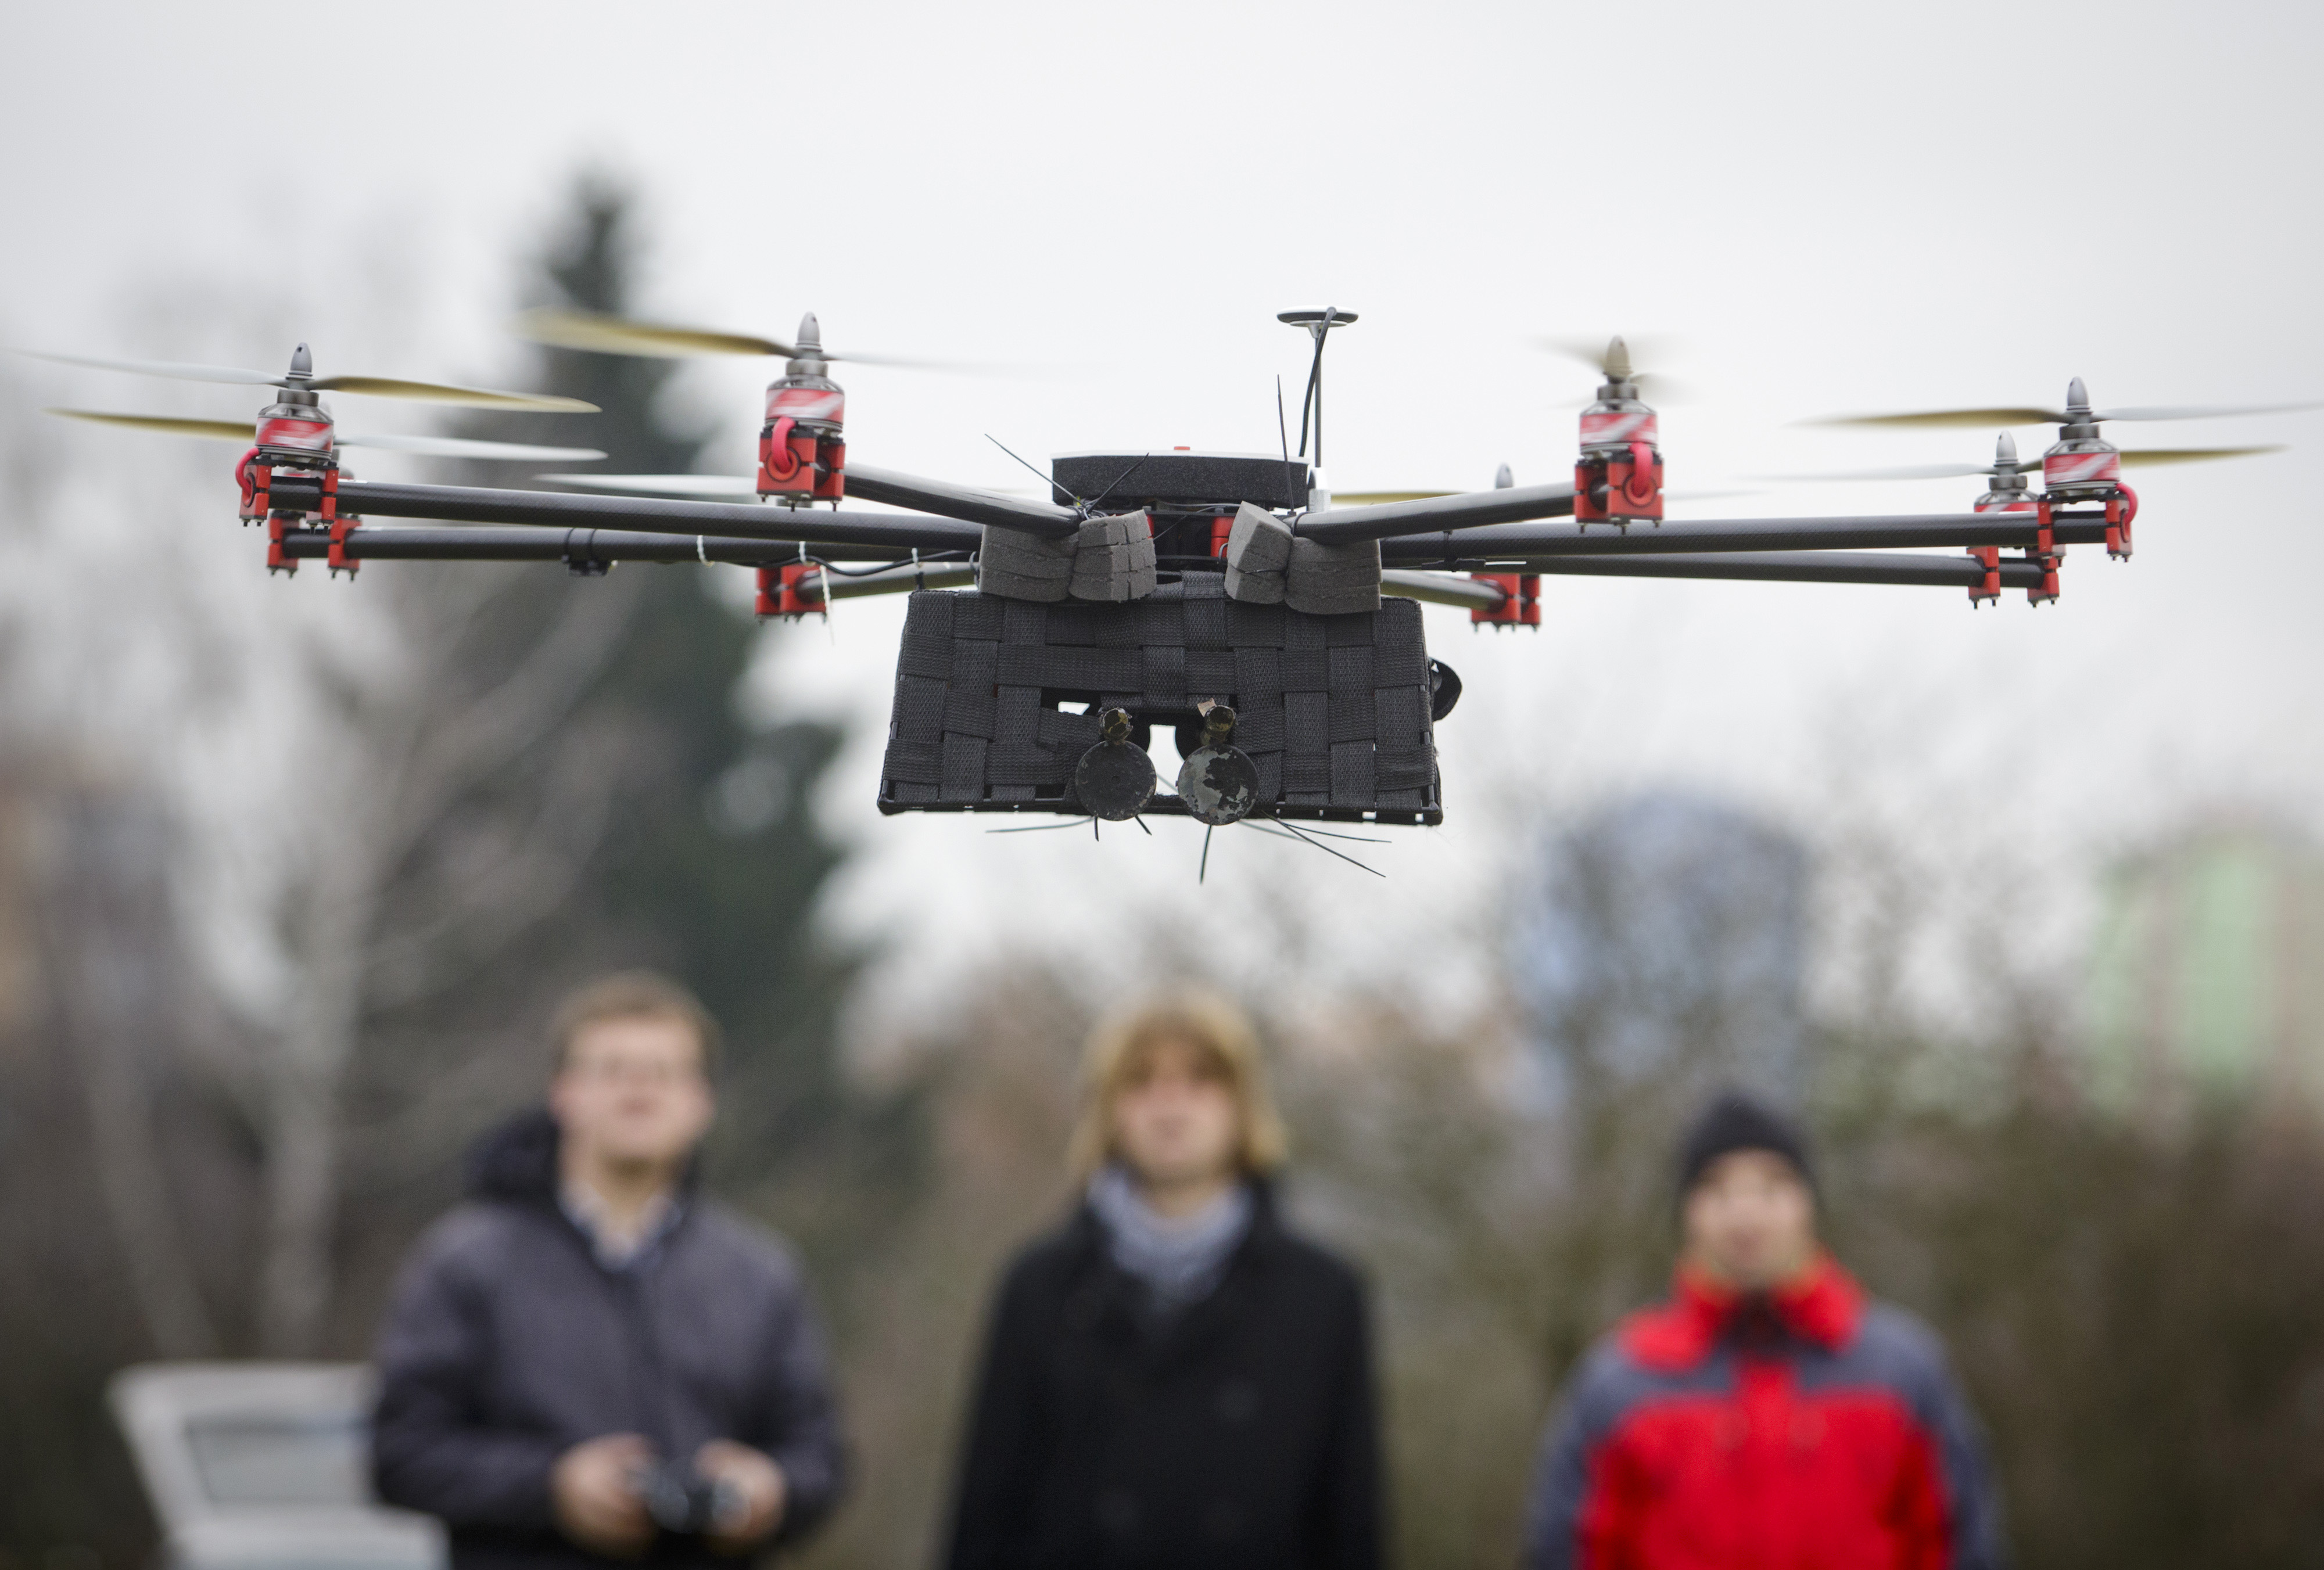 Technicians look on as a SteadiDrone EI8GHT Octocopter hovers during a test flight in a field outside the headquarters of Mensuro Ltd., a distributor for SteadiDrone Ltd. products, in Pilsen, Czech Republic, on Tuesday, Dec. 10, 2013.